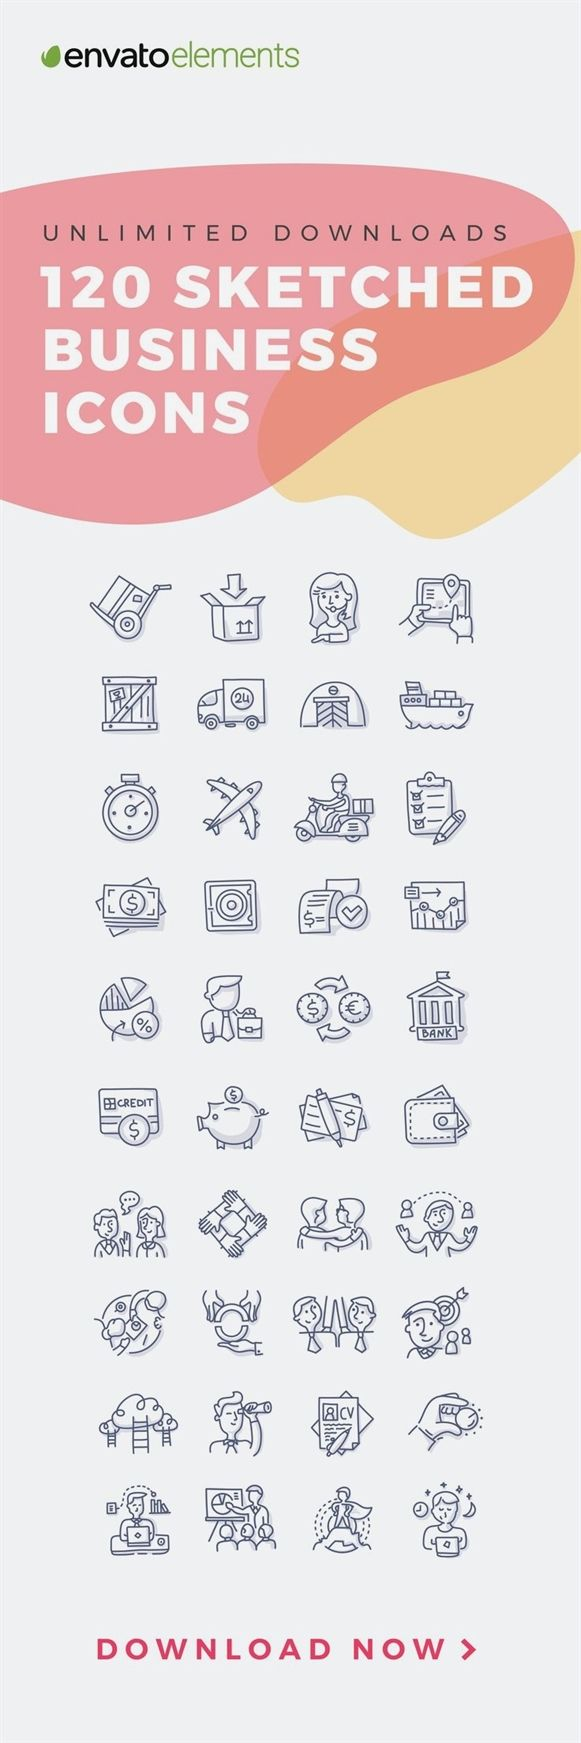 Simple Tips To Help You Get A Job (With images) Icon